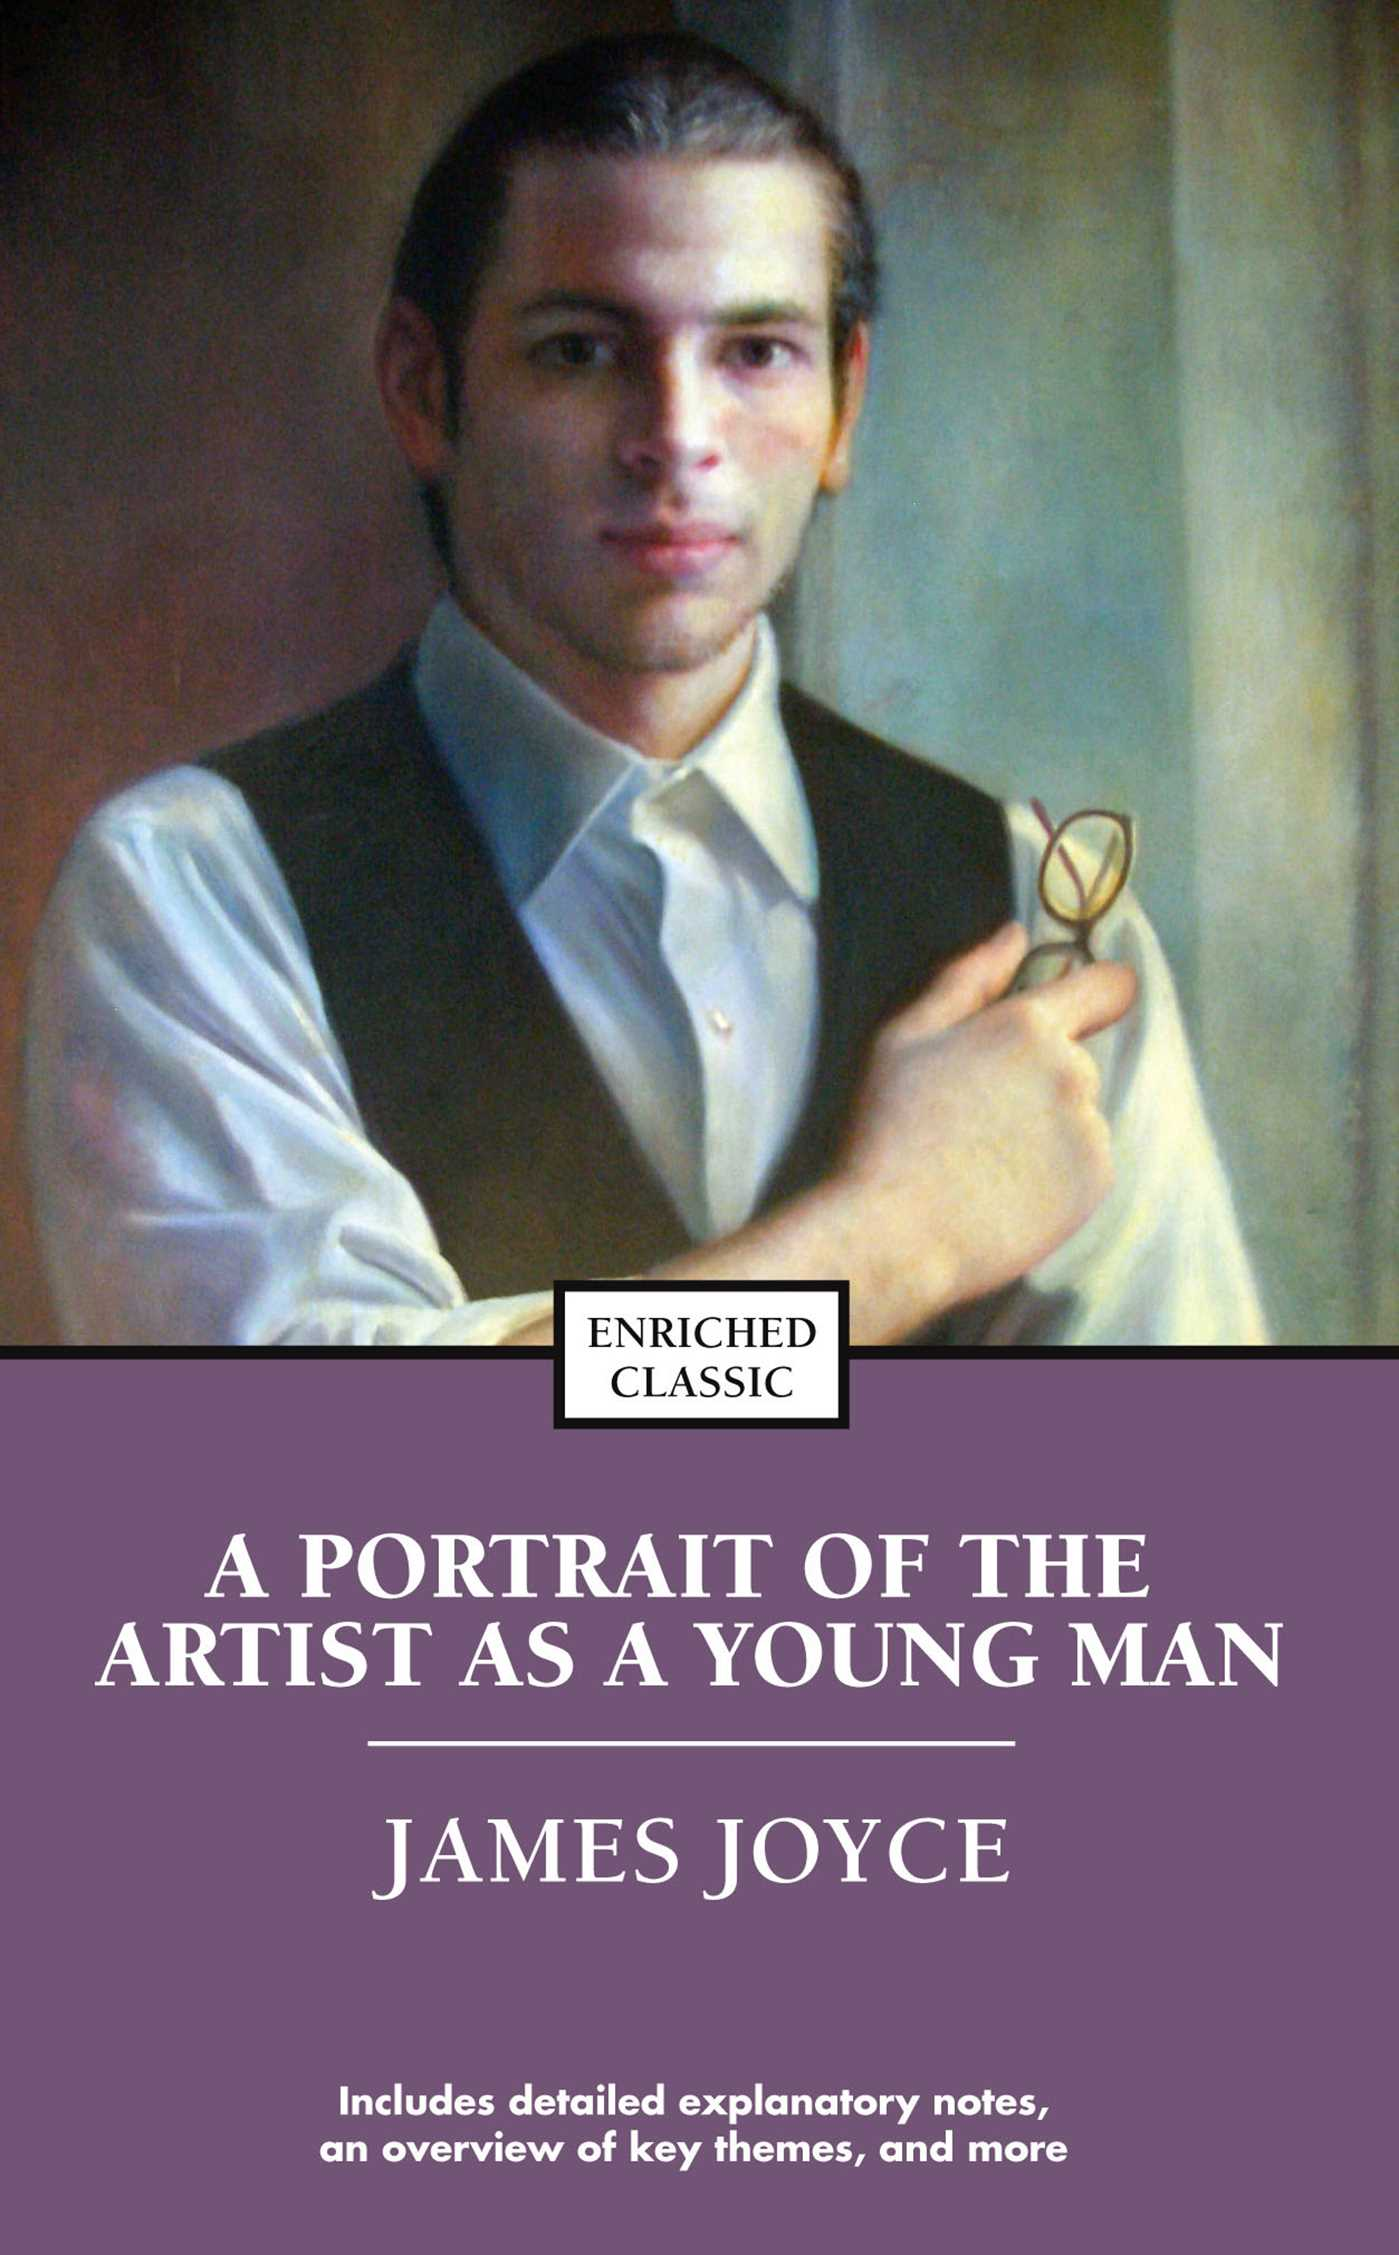 a literary analysis of a portrait of the artist as a young man by james joyce Complete summary of james joyce's a portrait of the artist as a young man enotes plot summaries cover all the significant action of a portrait of the artist as a young man james joyce's literary reputation is remarkable when we consider his relatively scant output.